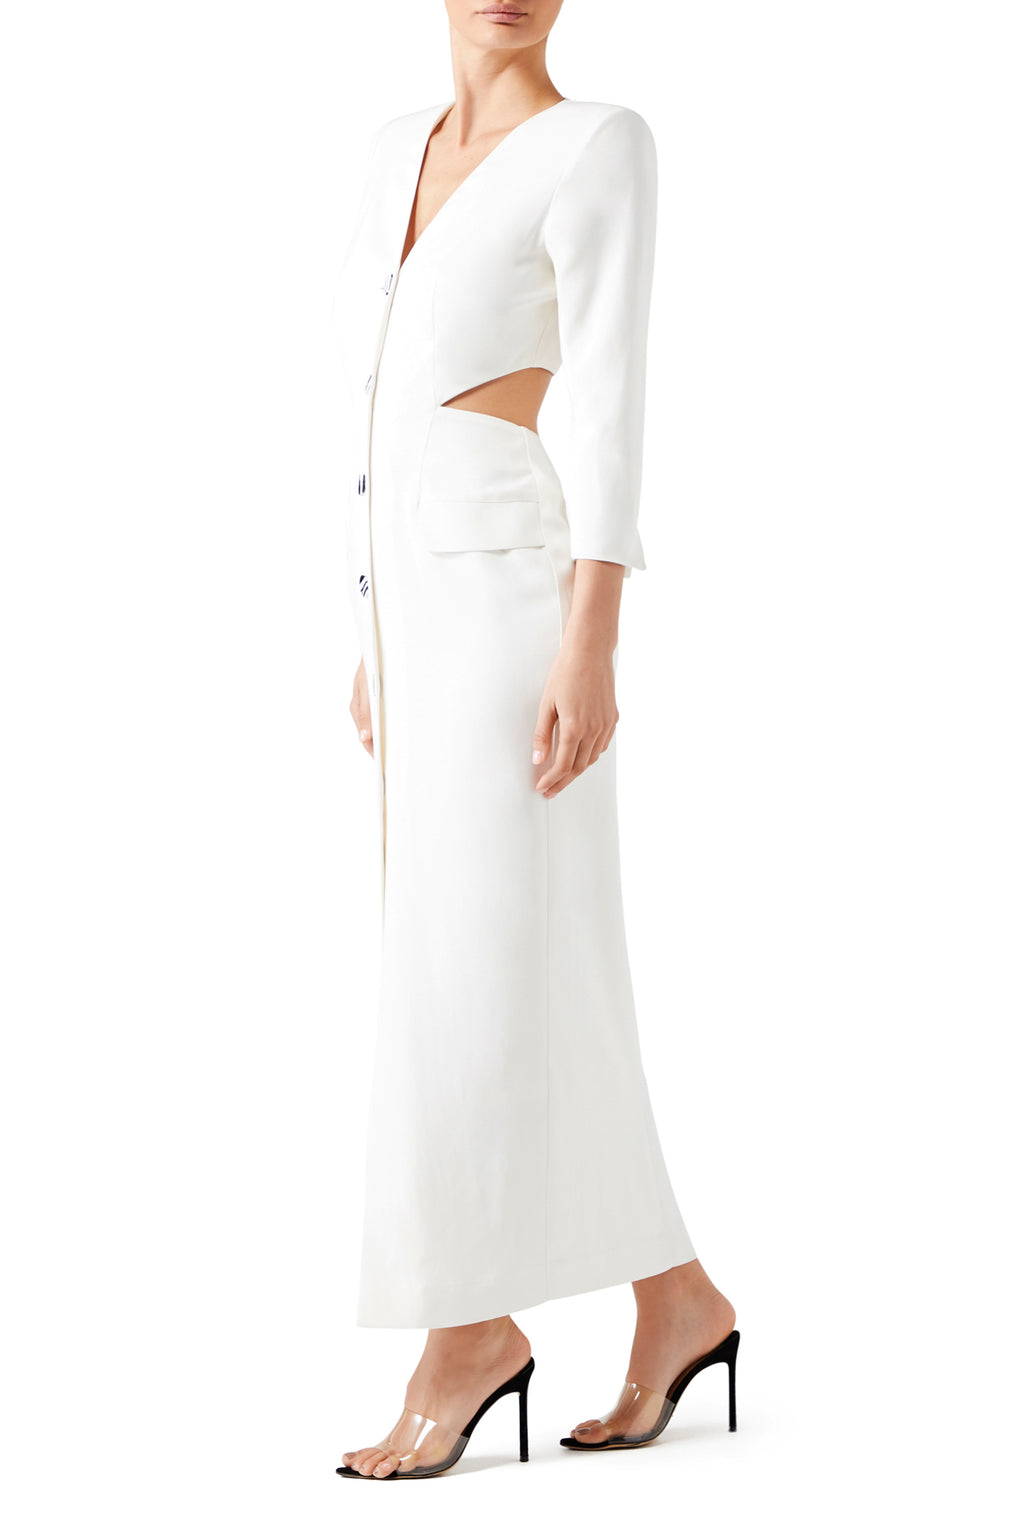 The Soho Cut Out Maxi